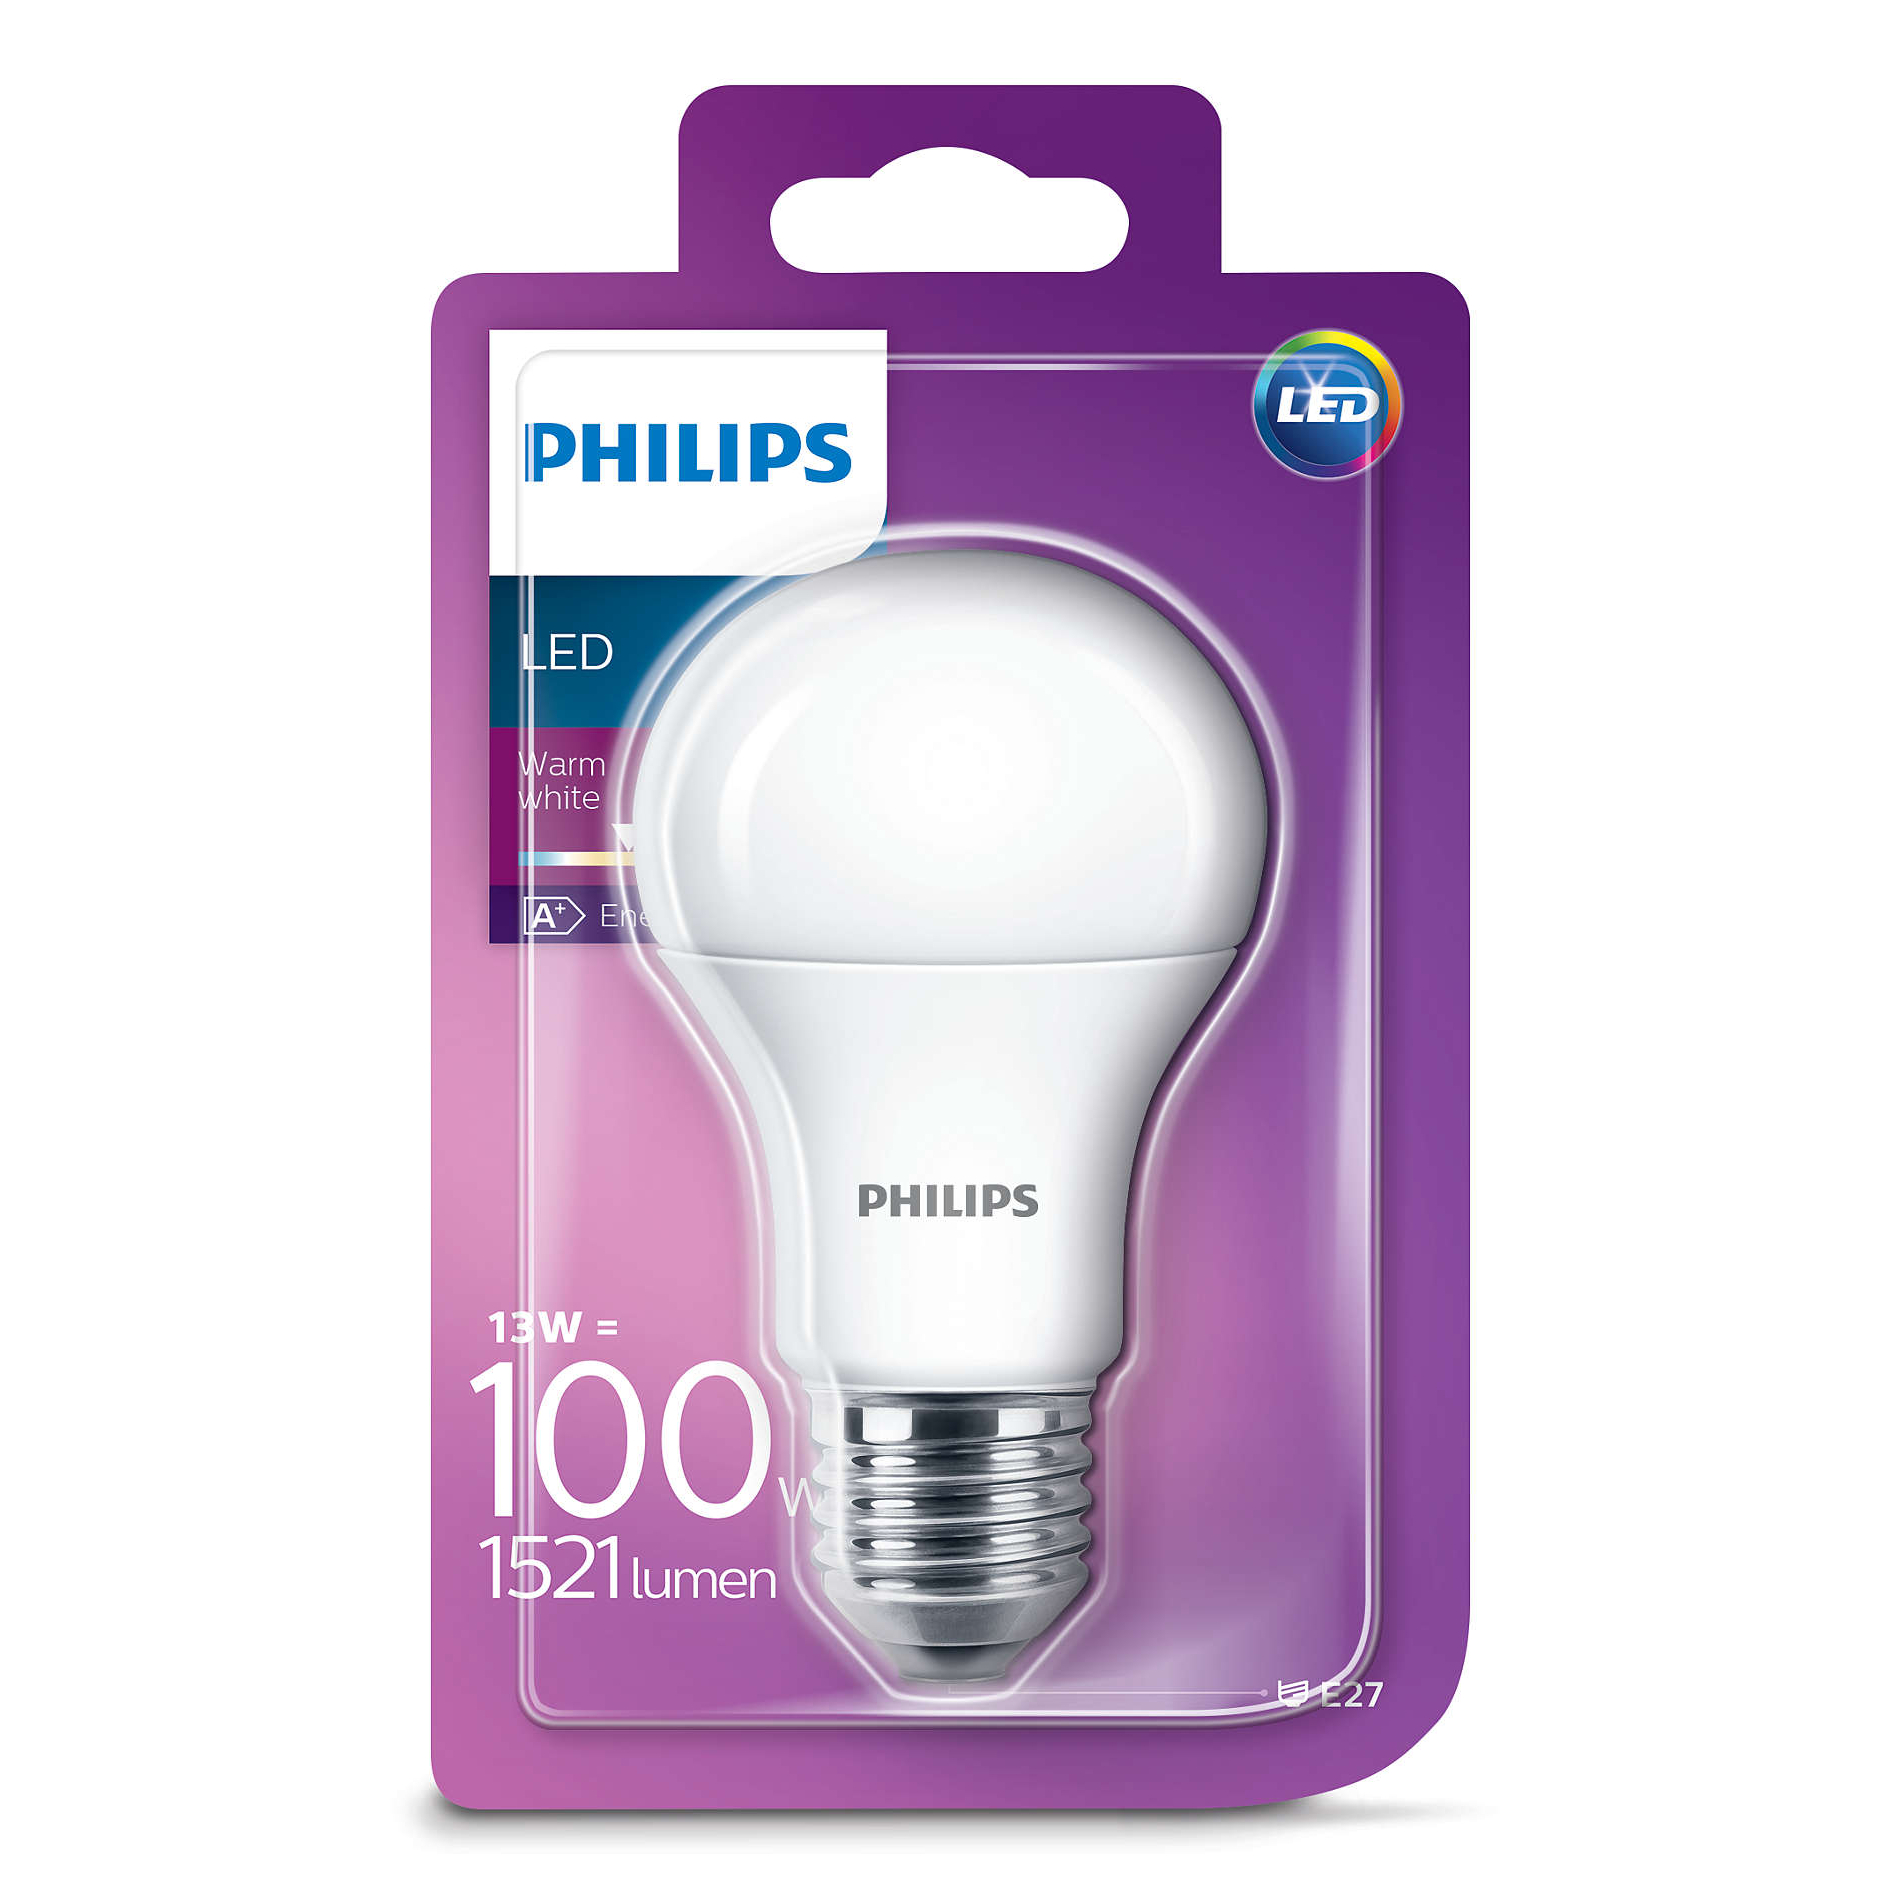 E27 Led 100w Details About 1x Philips Led Frosted E27 100w Warm White Edison Screw Light Bulb Lamp 1521lm